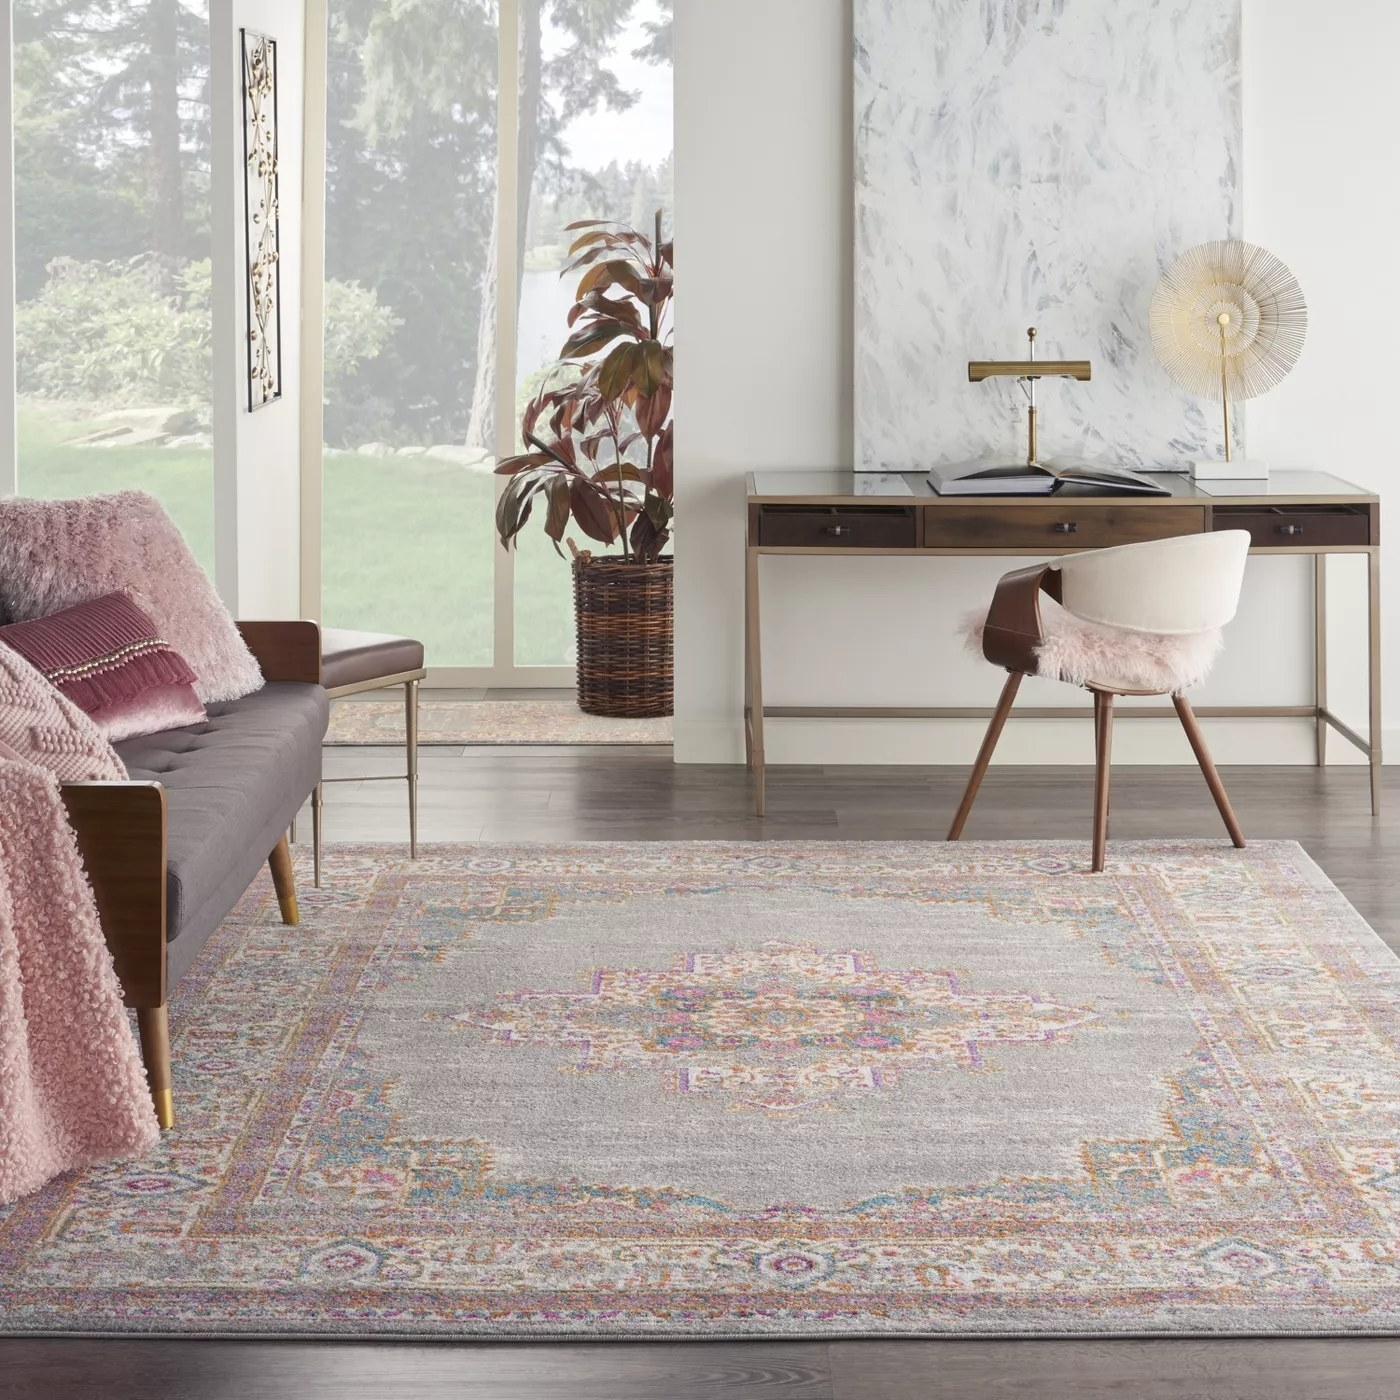 The gray rug with a pink border and medallion